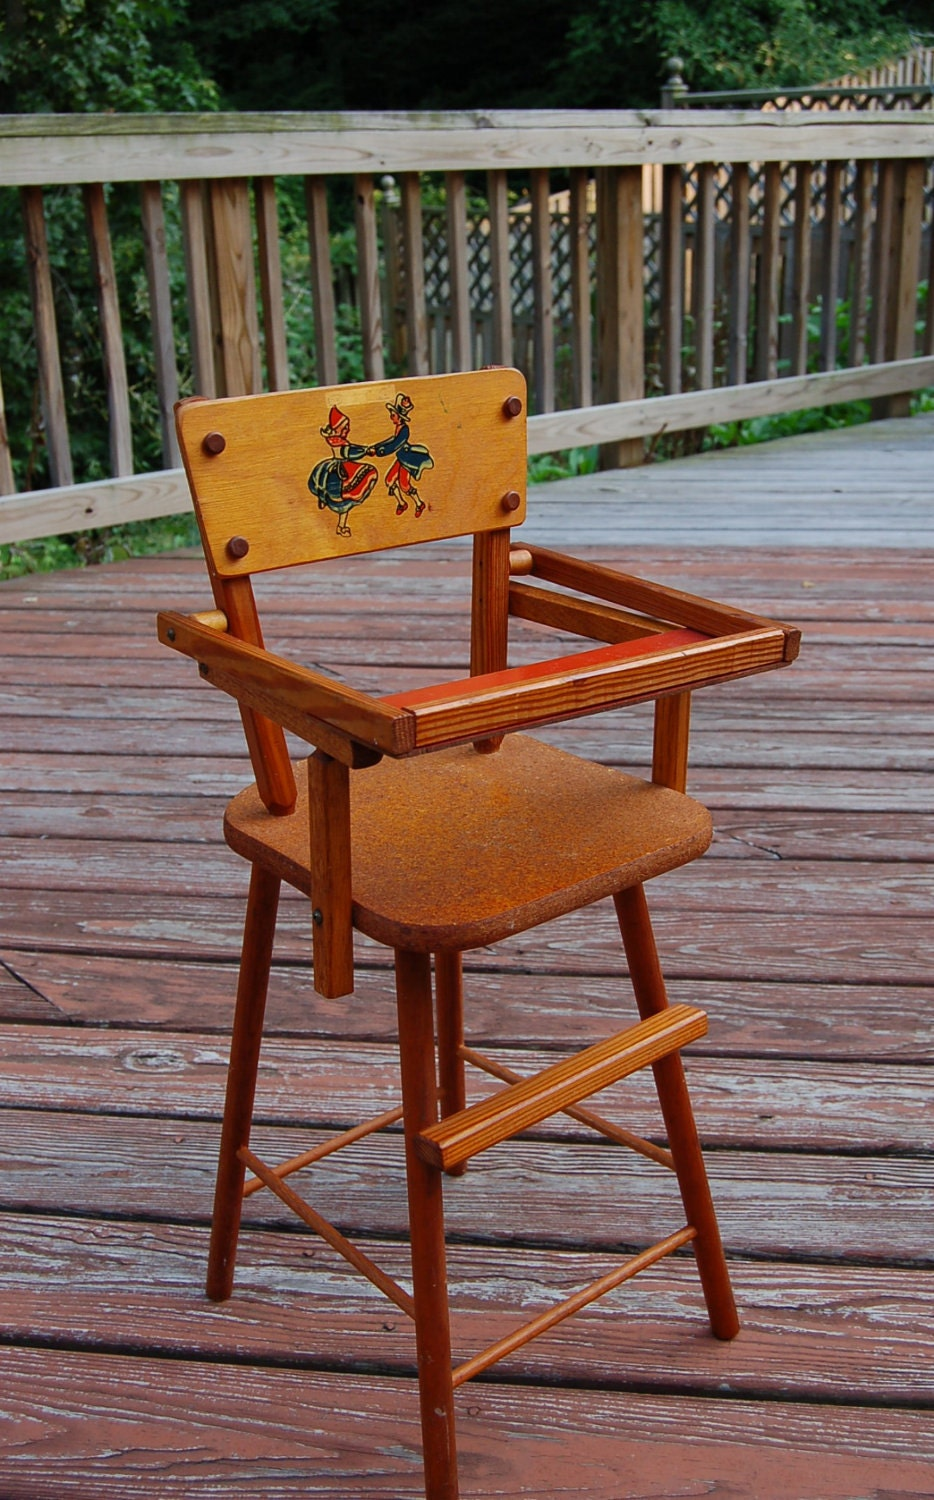 Vintage Doll High Chair From Cass Toys - Antique Doll Chair Antique Collectible Handcrafted Miniature Wicker